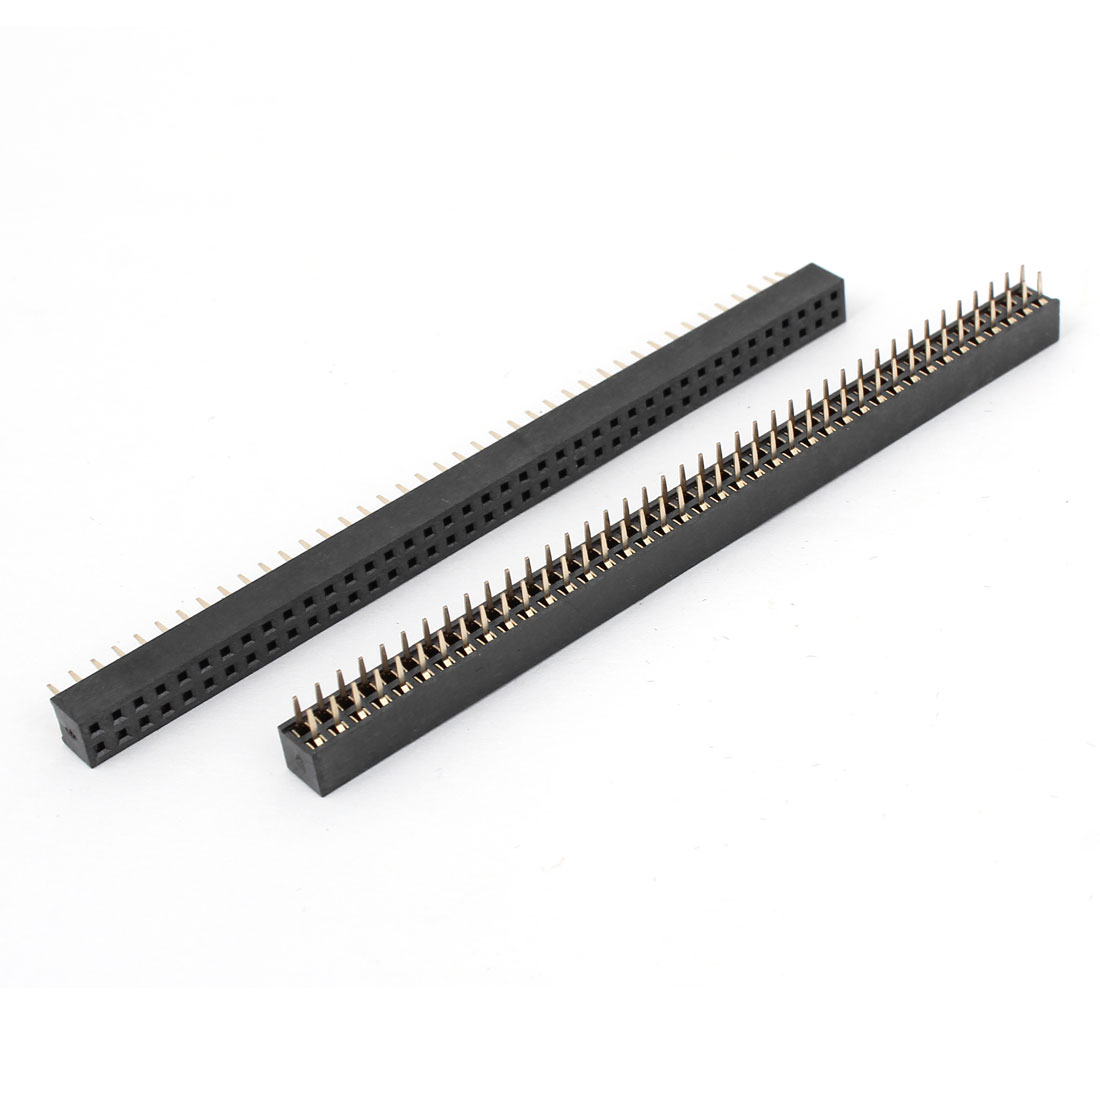 2 Pcs 2x40 2.54mm Pitch Double Rows PCB Pin Socket Headers